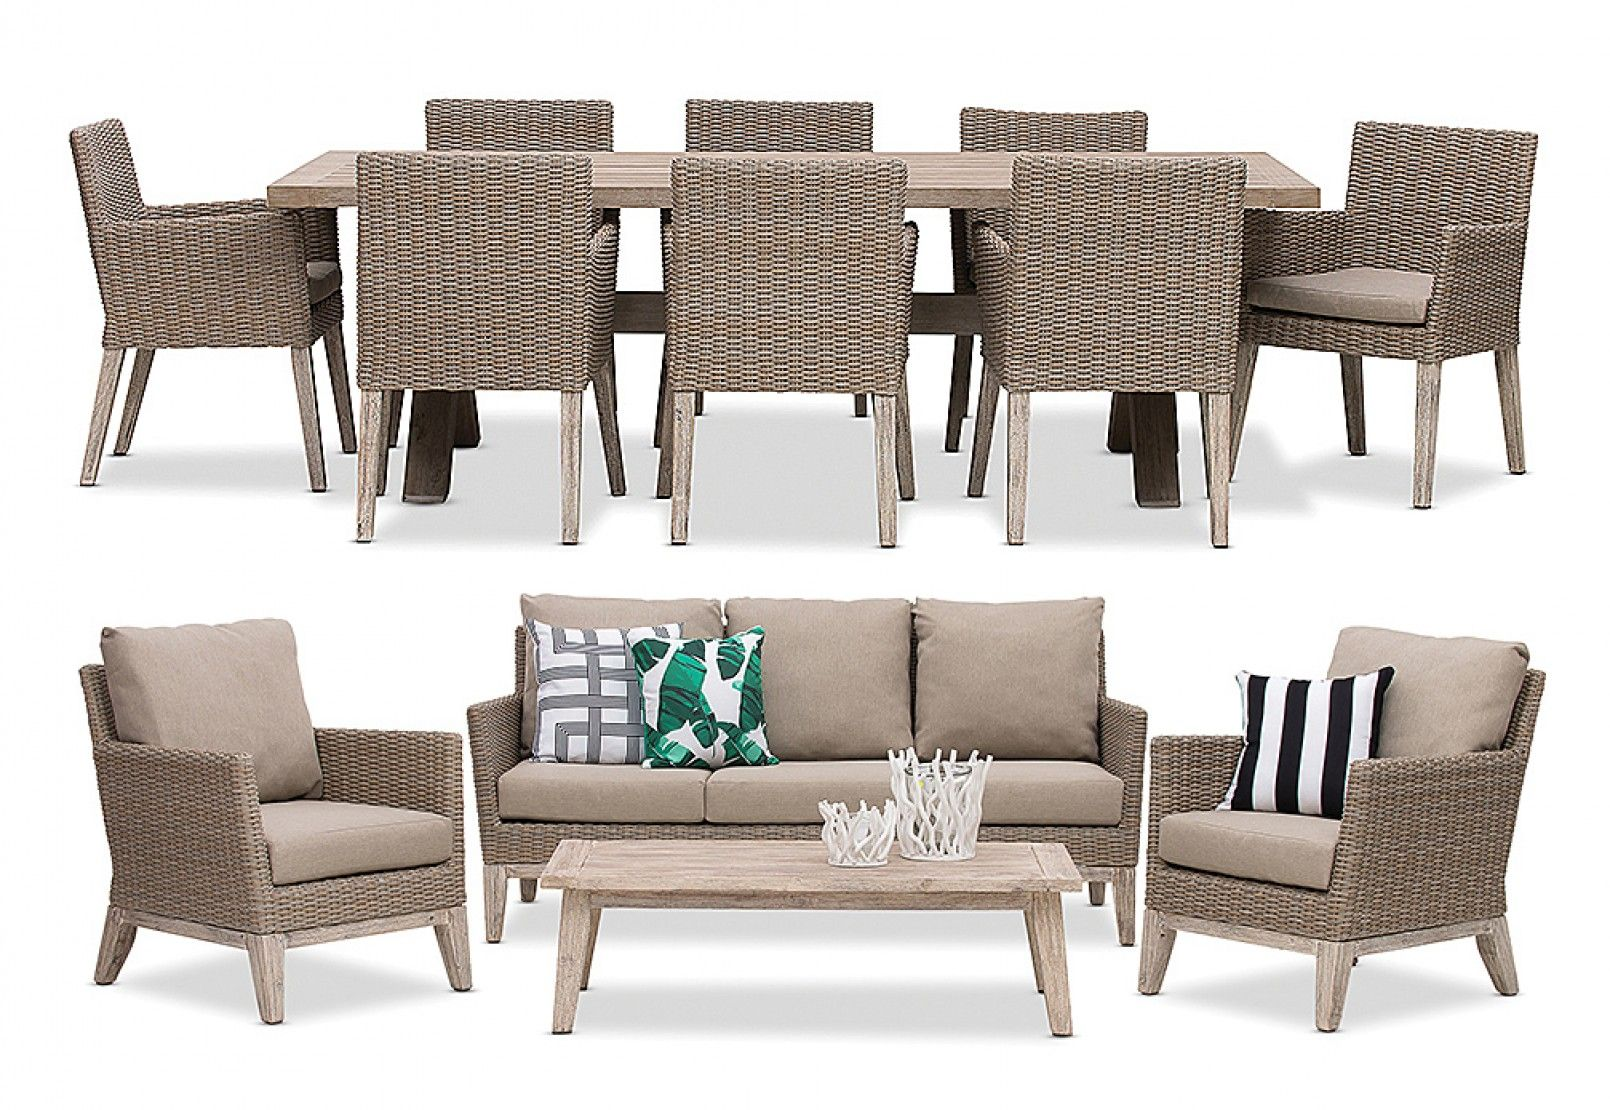 Gryphon 4 Piece Outdoor Lounge Setting | Super A Mart | Outdoor Furniture |  Pinterest | Outdoor Lounge, Living Spaces And Outdoor Living